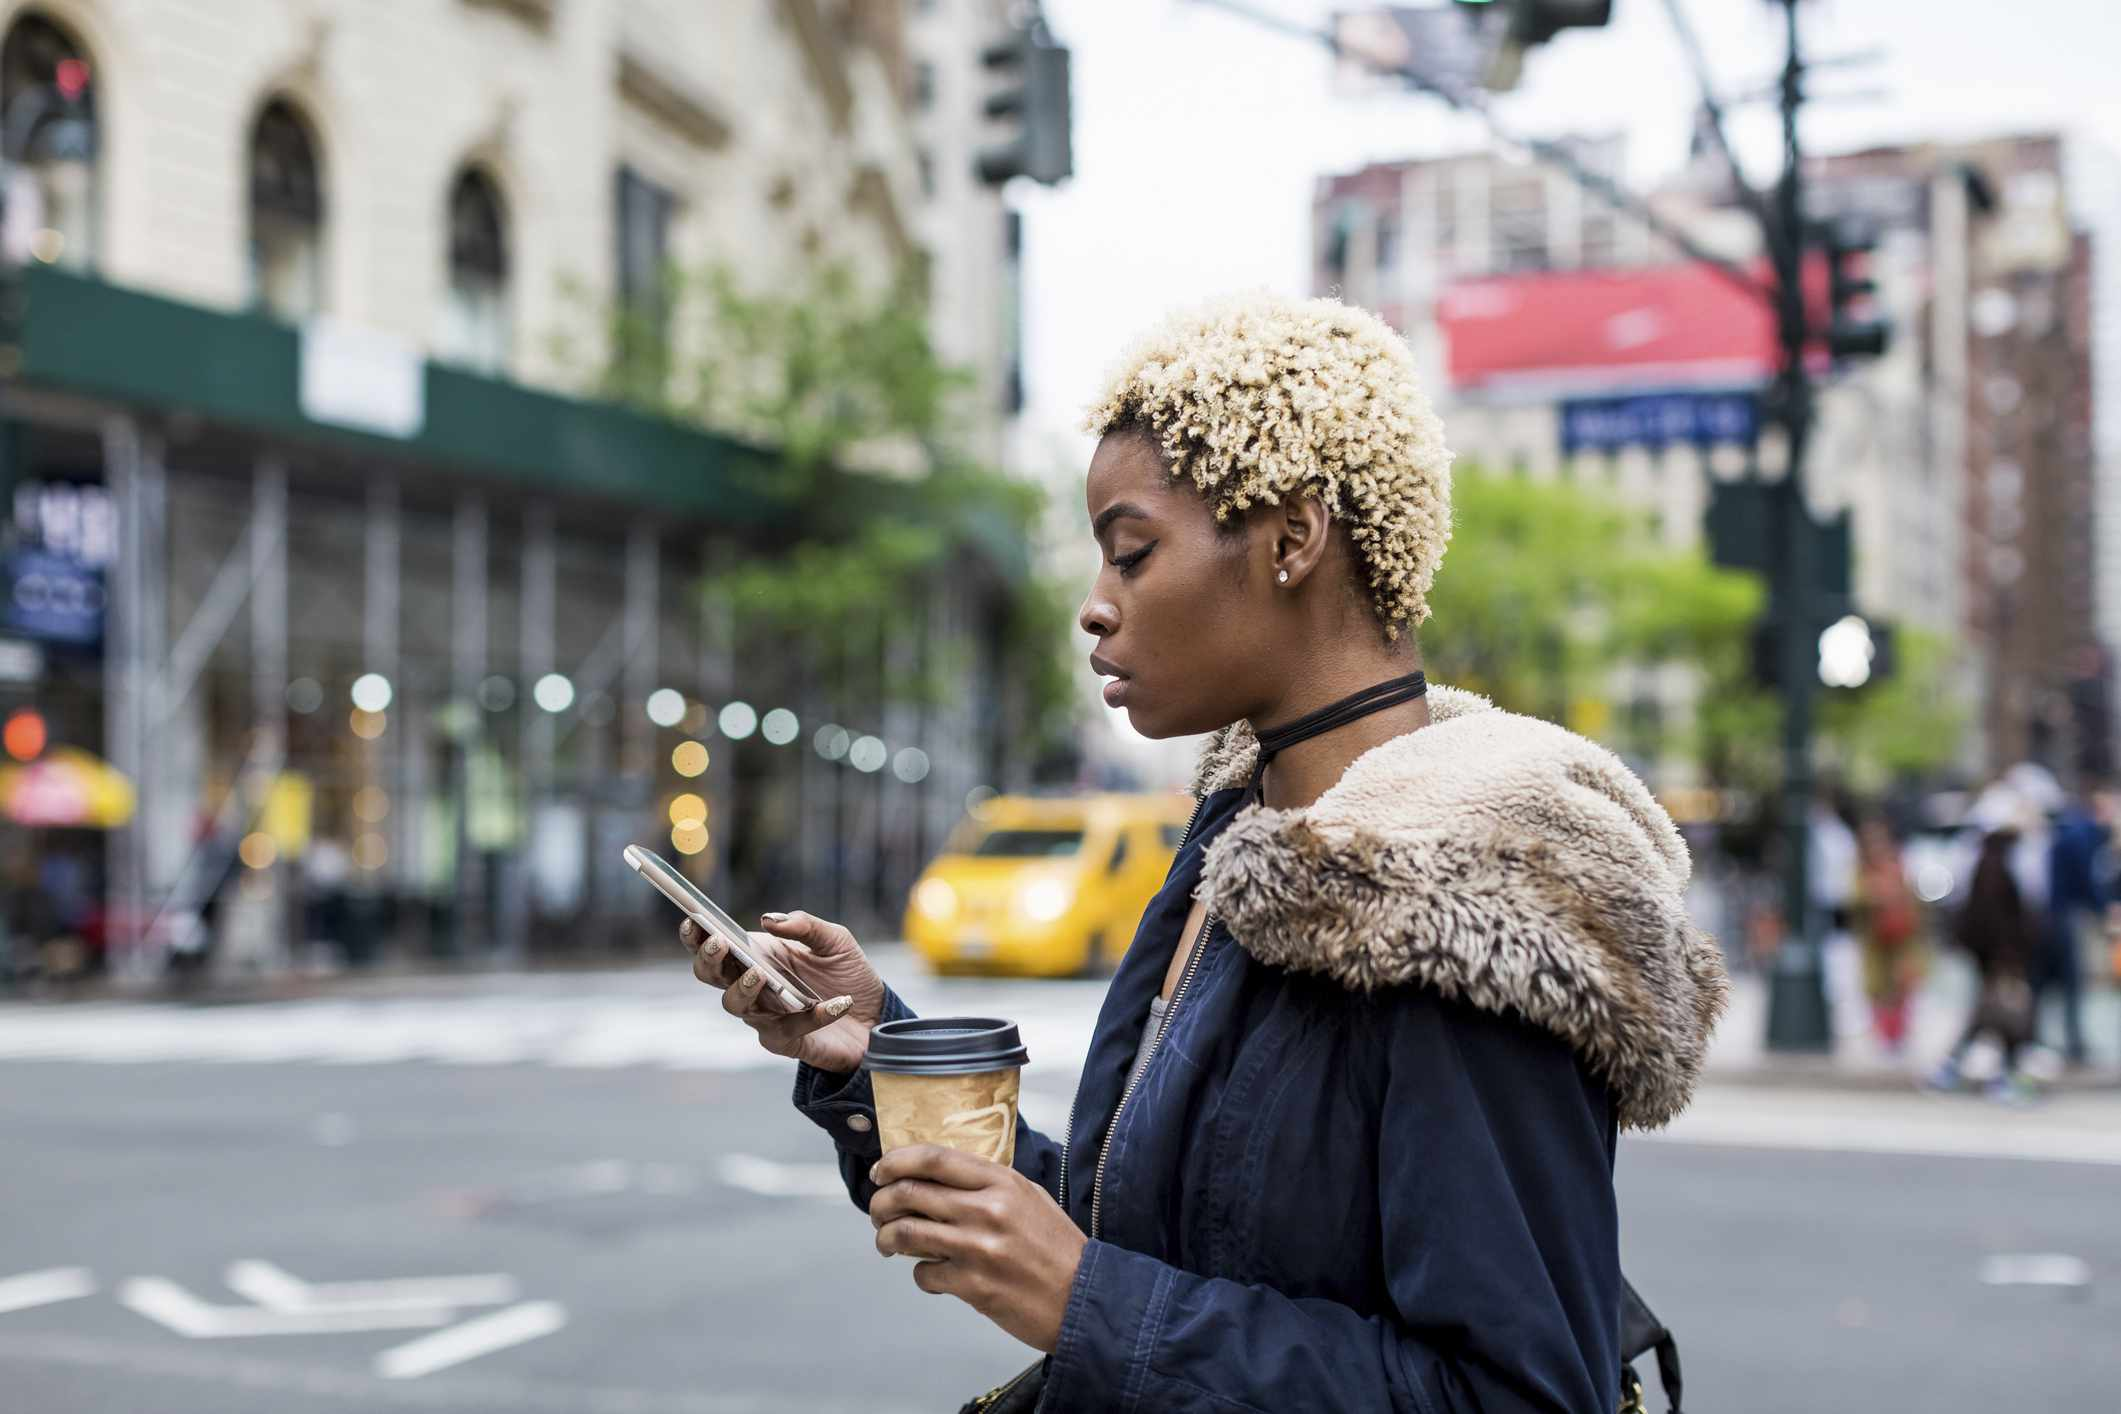 A young black woman crosses the street looking at phone in New York City.